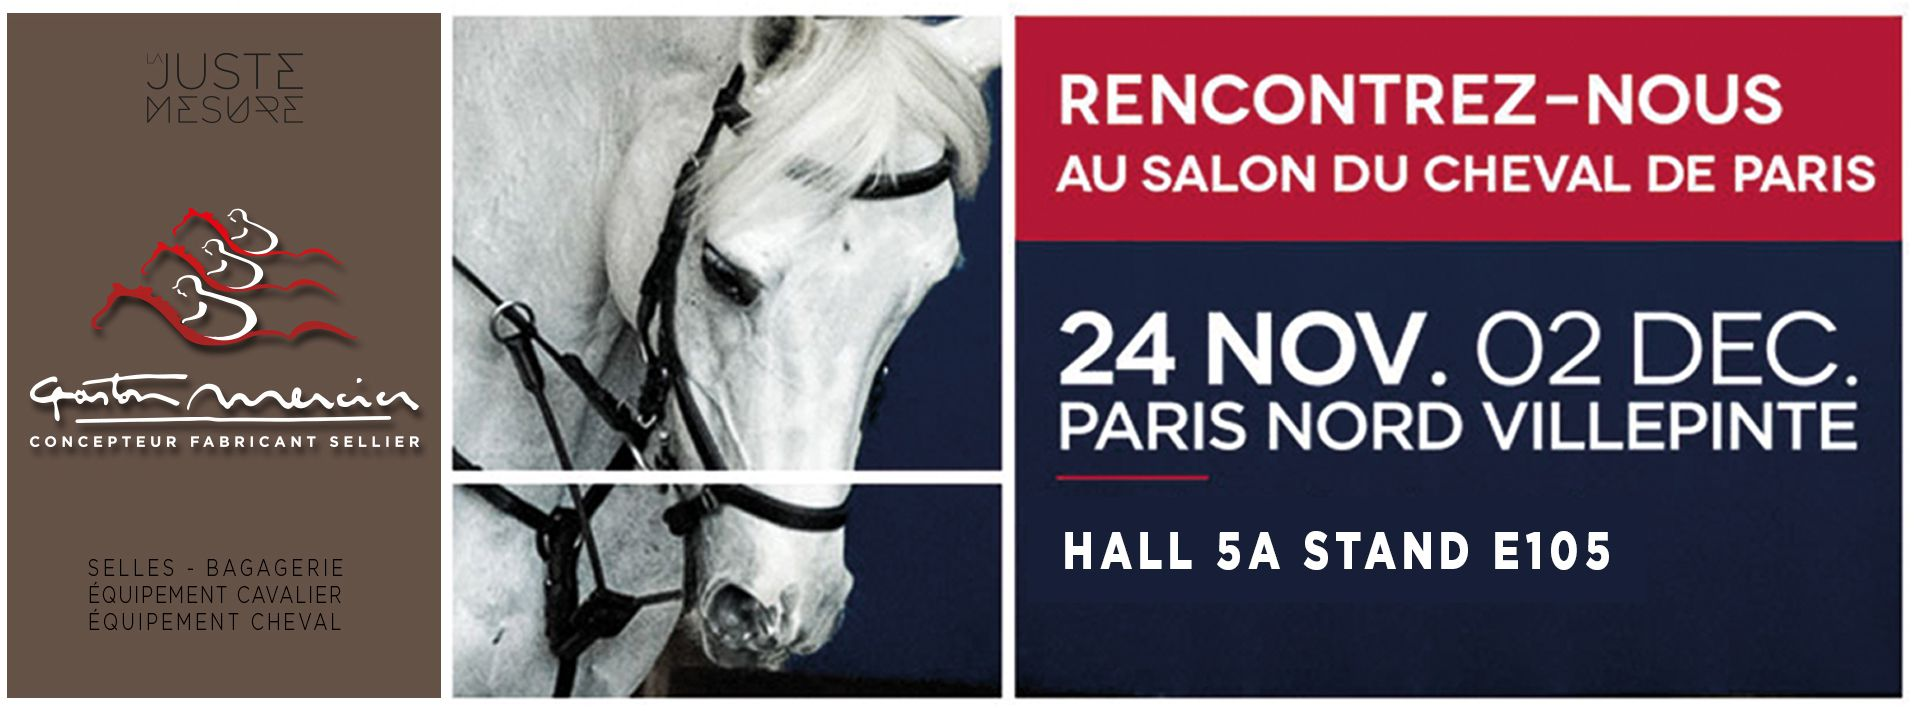 Salon Du Cheval A Paris Gaston Mercier Au Salon Du Cheval De Paris Sellerie Gaston Mercier